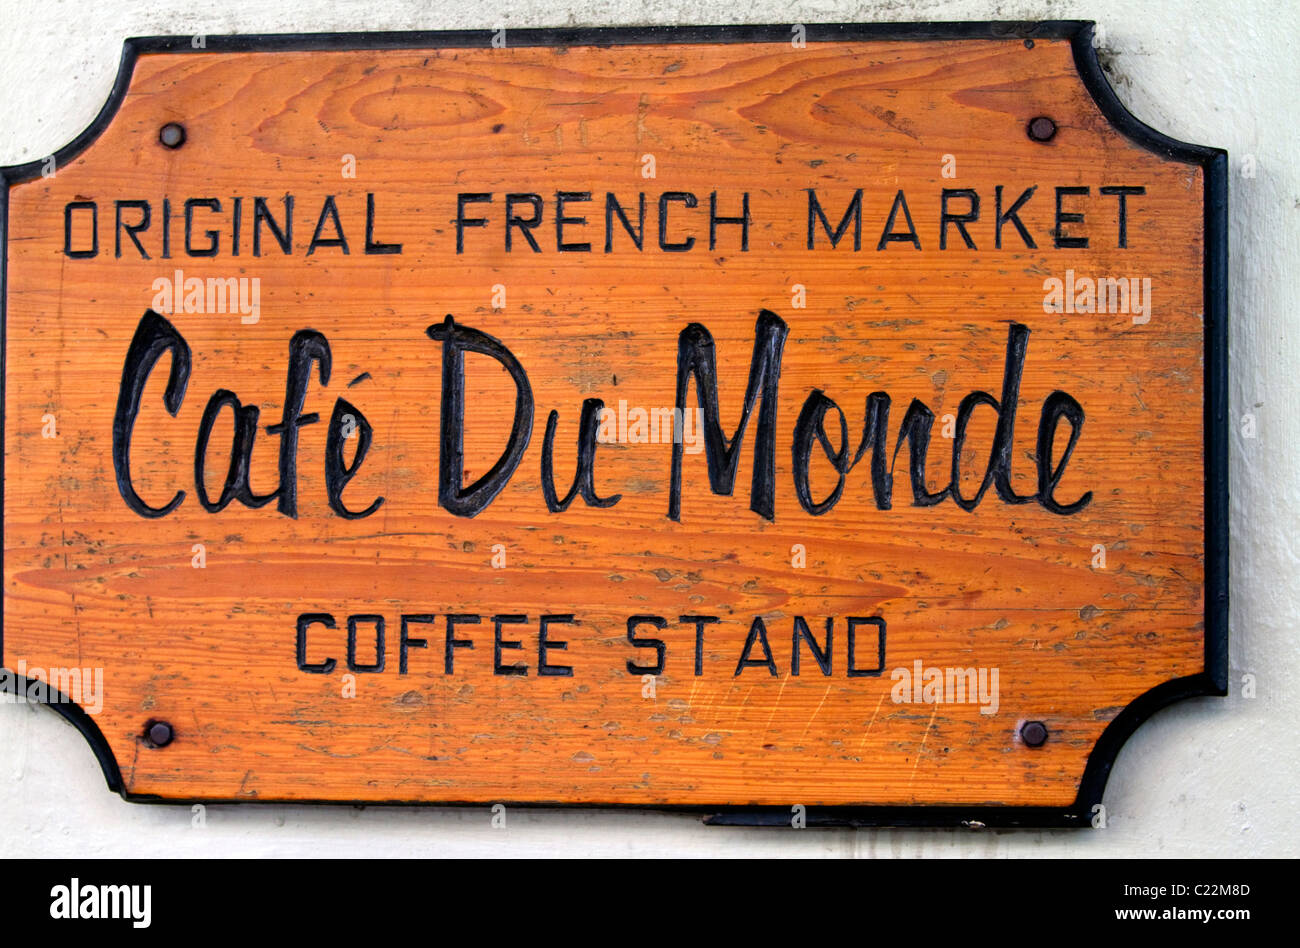 Cafe Du Monde in the French Quarter of New Orleans, Louisiana, USA. - Stock Image